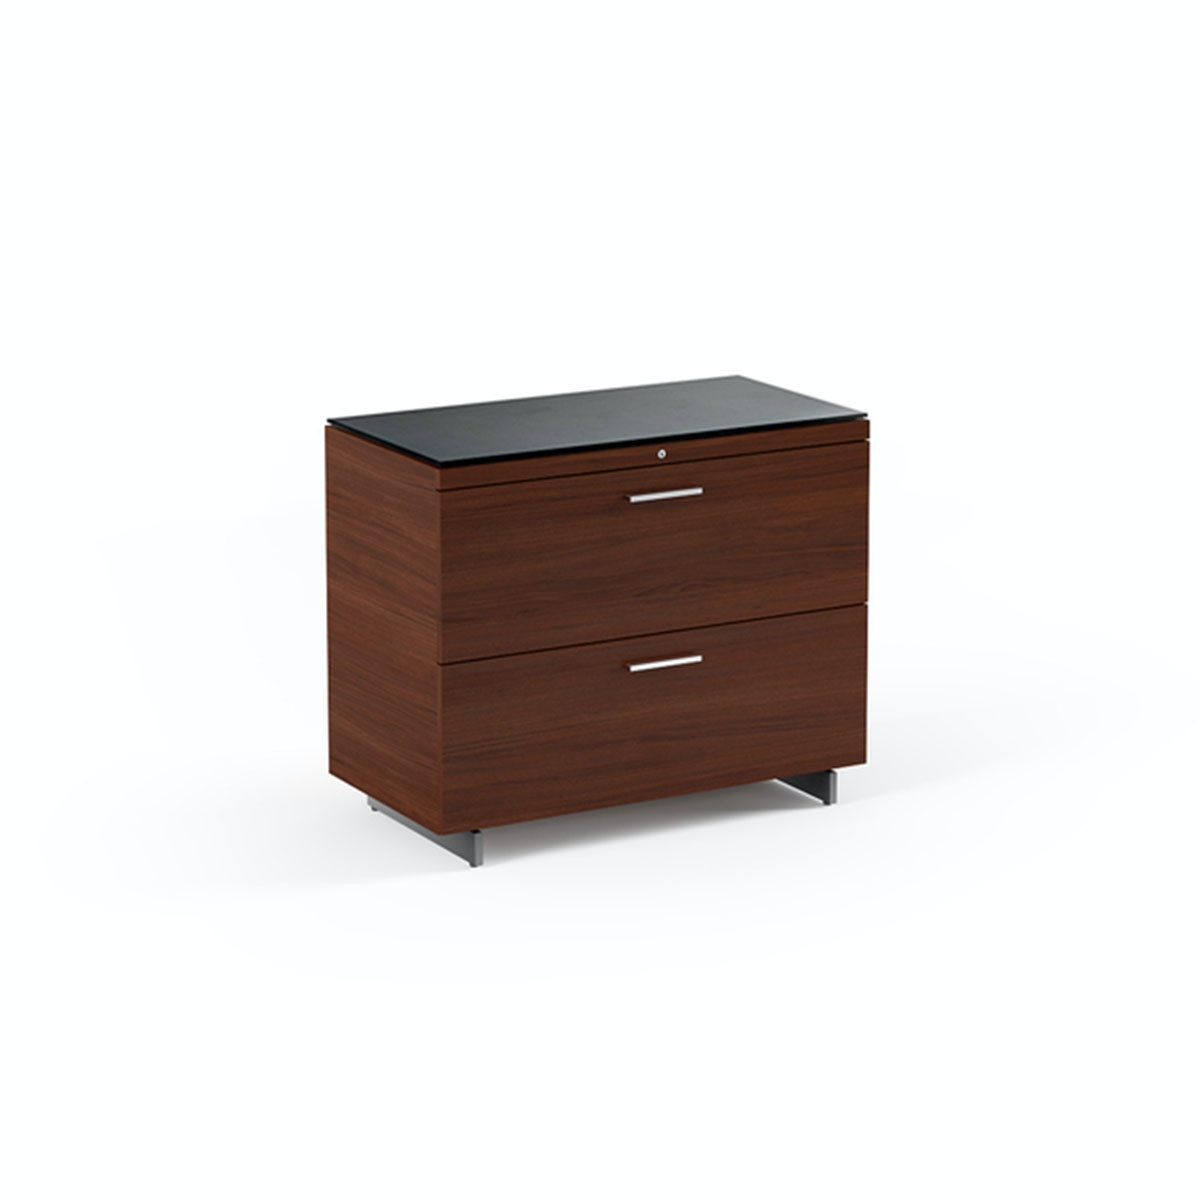 BDI Sequel 6016 Lateral File Cabinet  sc 1 st  Upper Room Home Furnishings & BDI Home Office Sequel 6016 Lateral File Cabinet - Upper Room Home ...